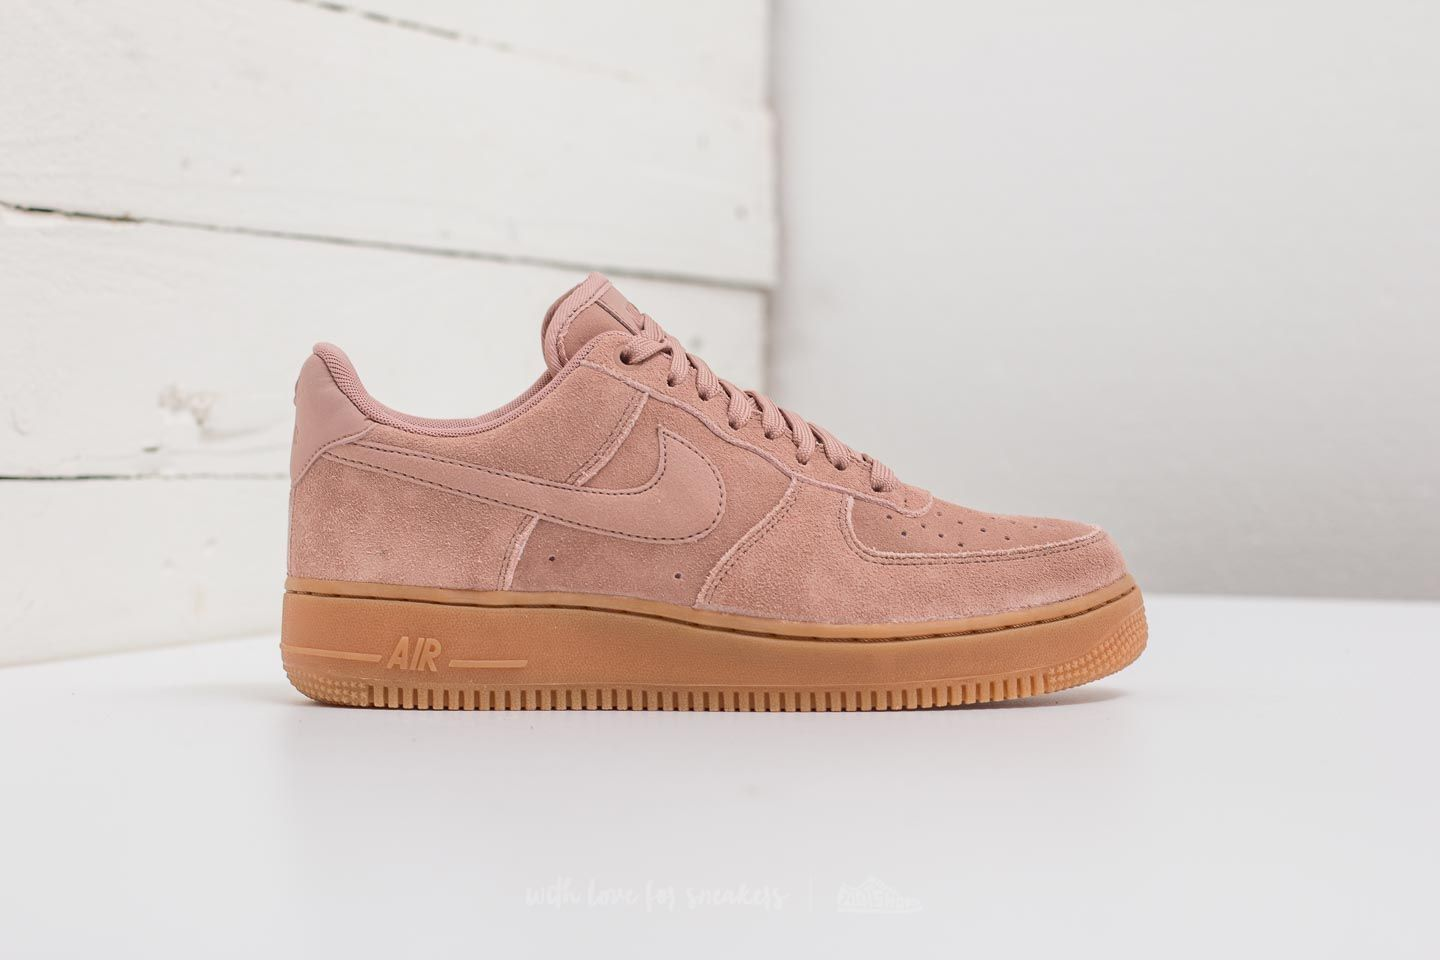 Nike Air Force 1 ´07 LV8 Suede Particle Pink Particle Pink | Footshop